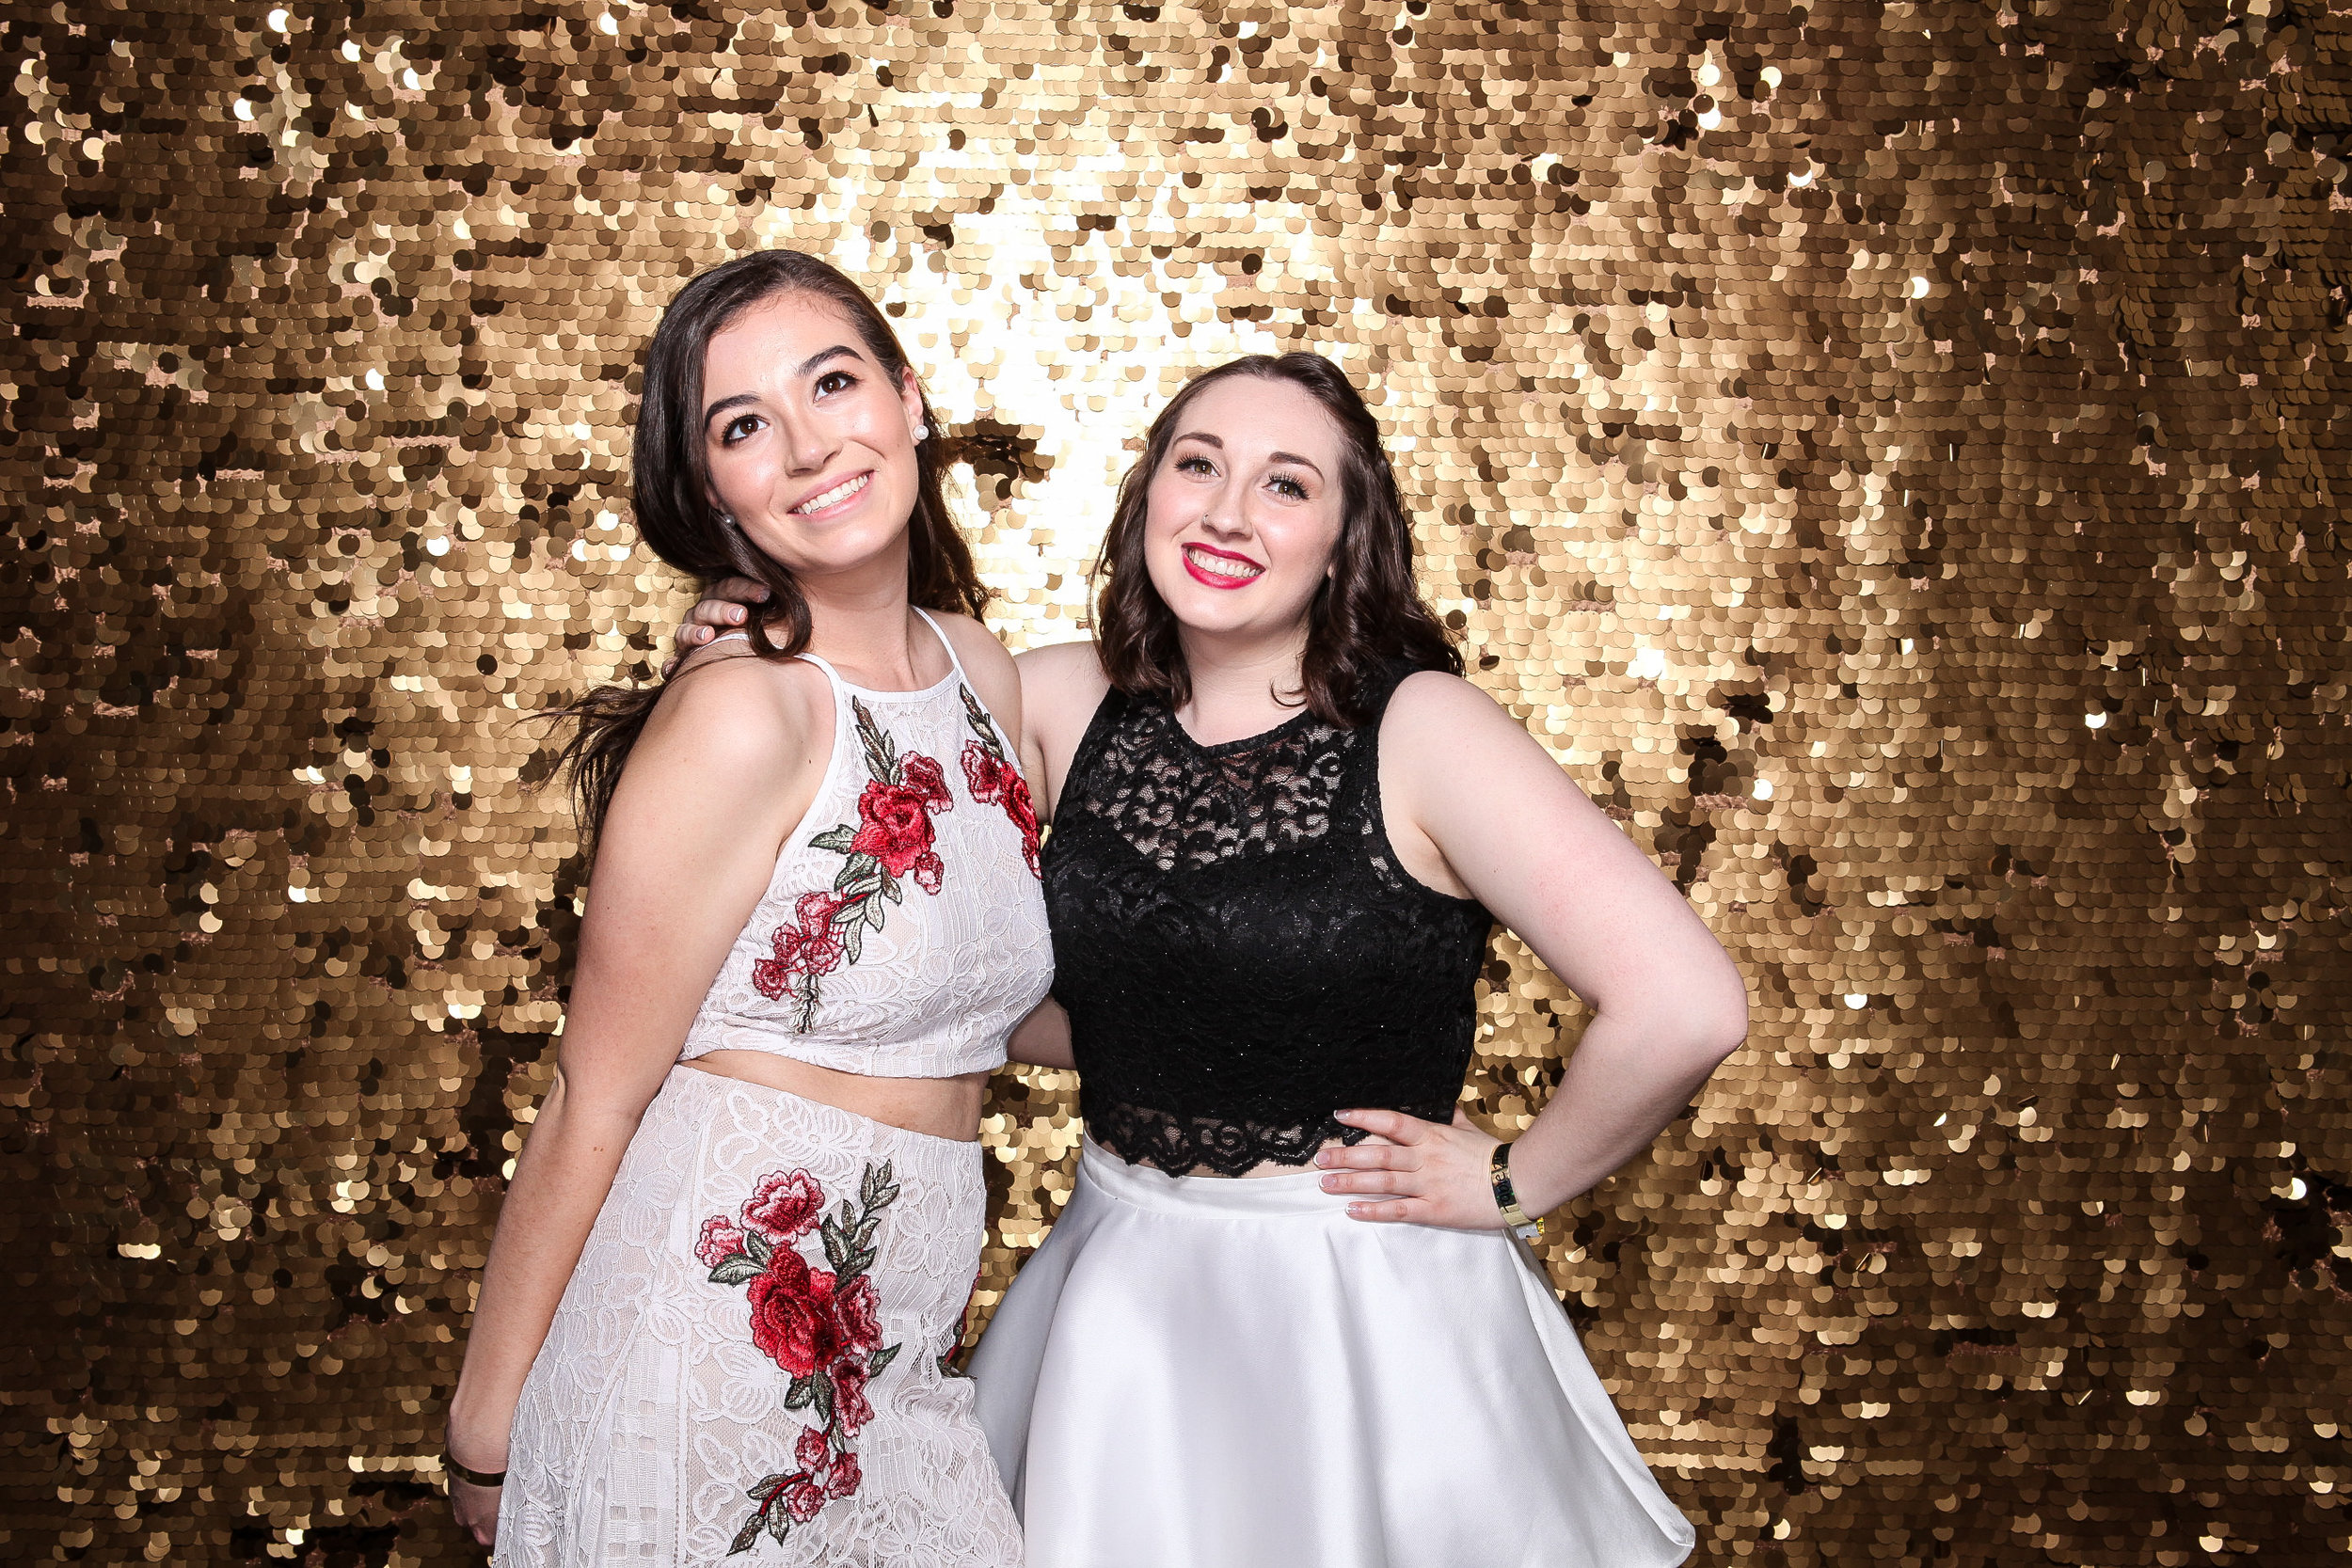 20190503_Adelphi_Senior_Formal-273.jpg